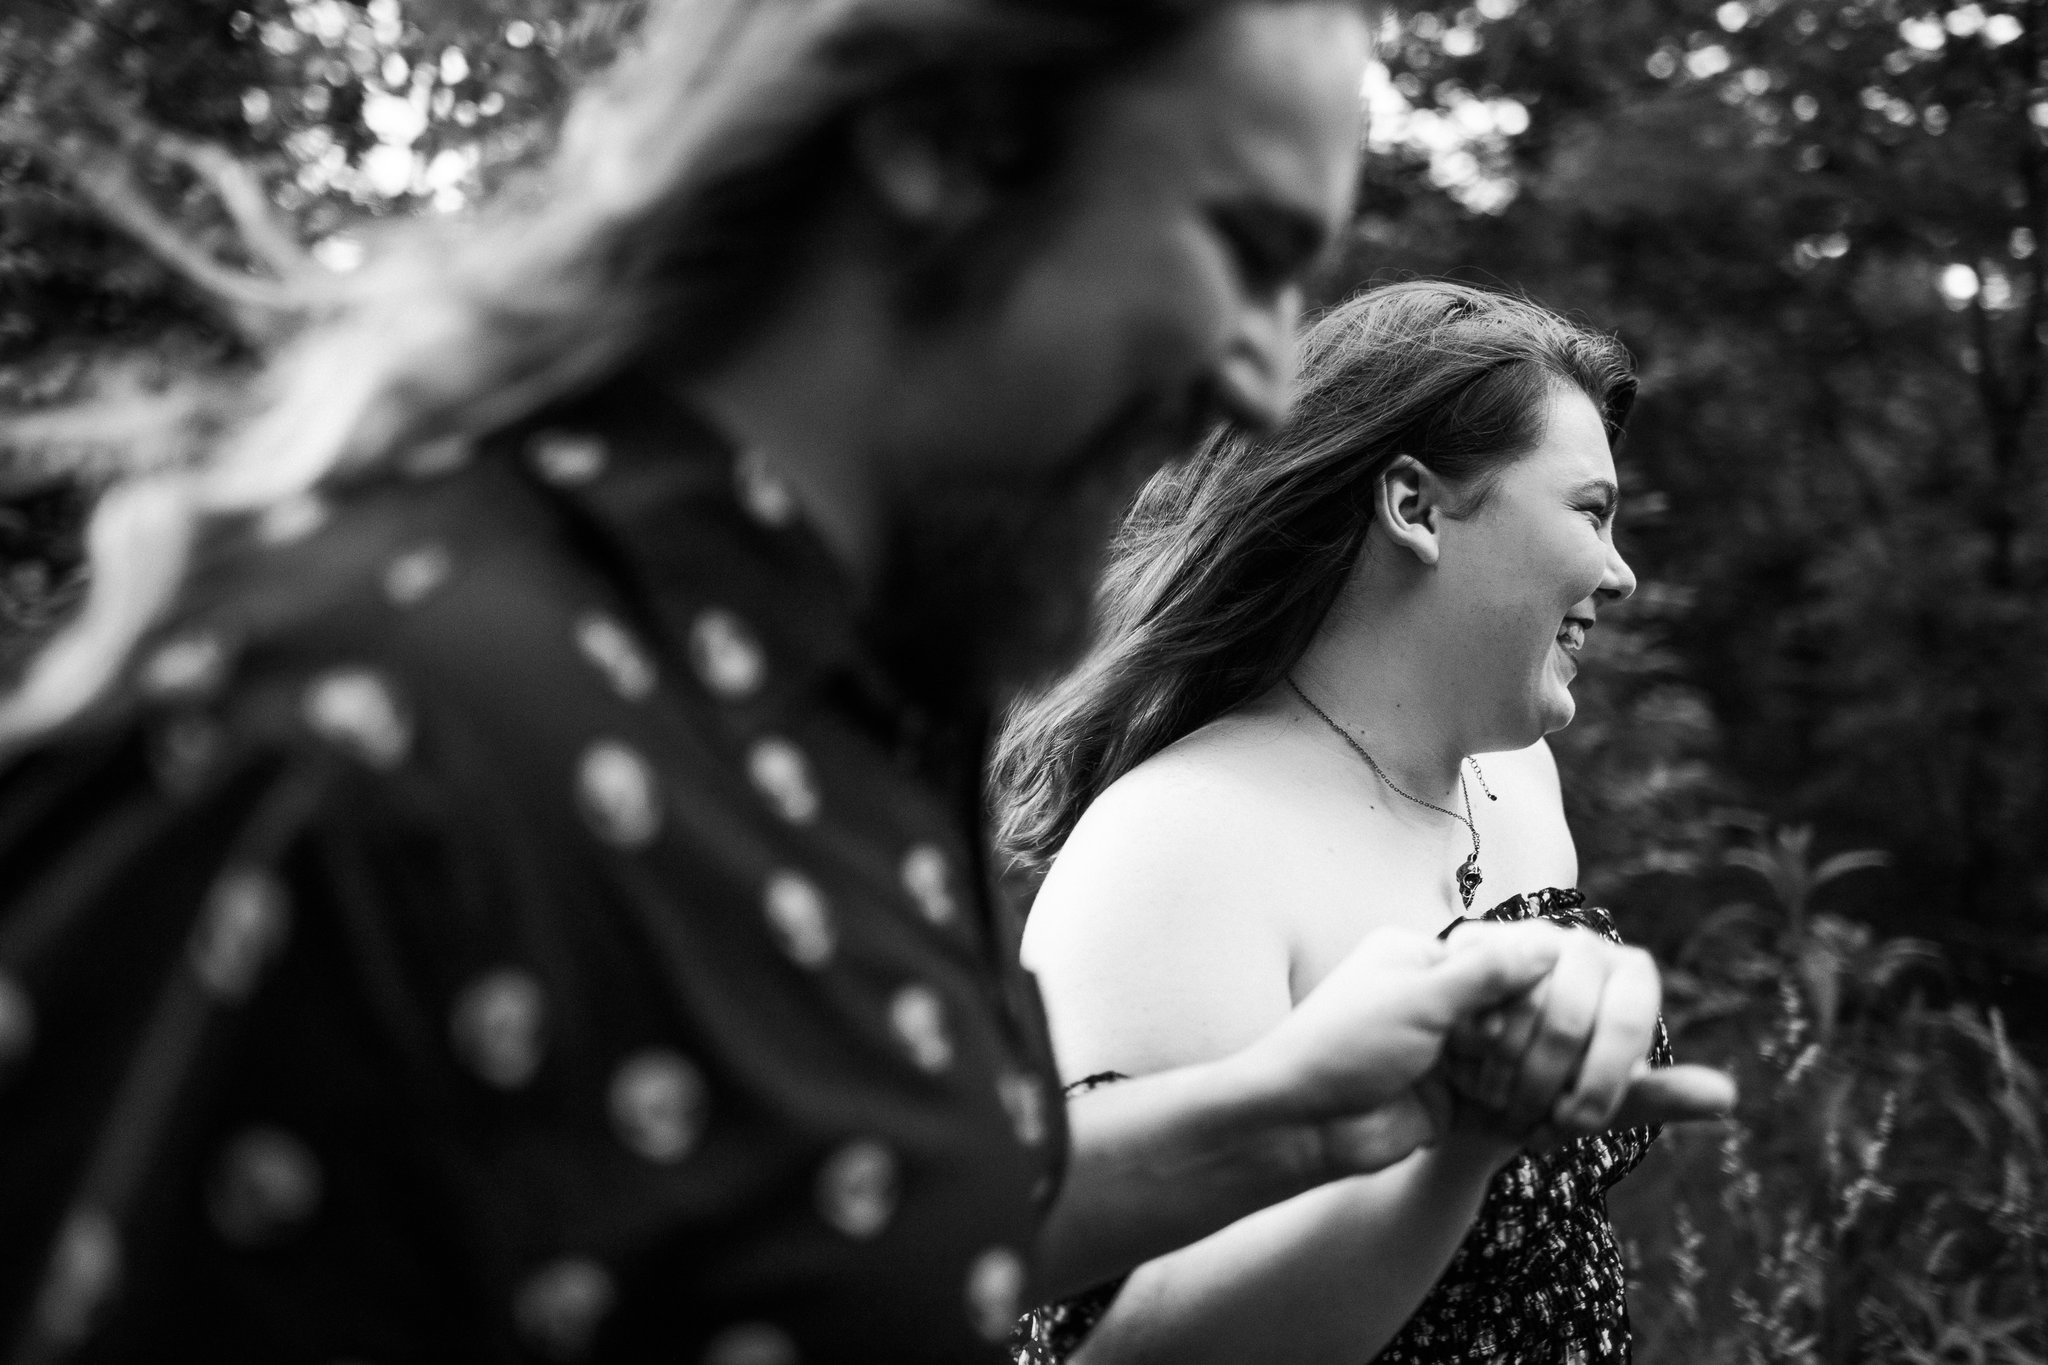 SavannahandTomEngagement-91.jpg